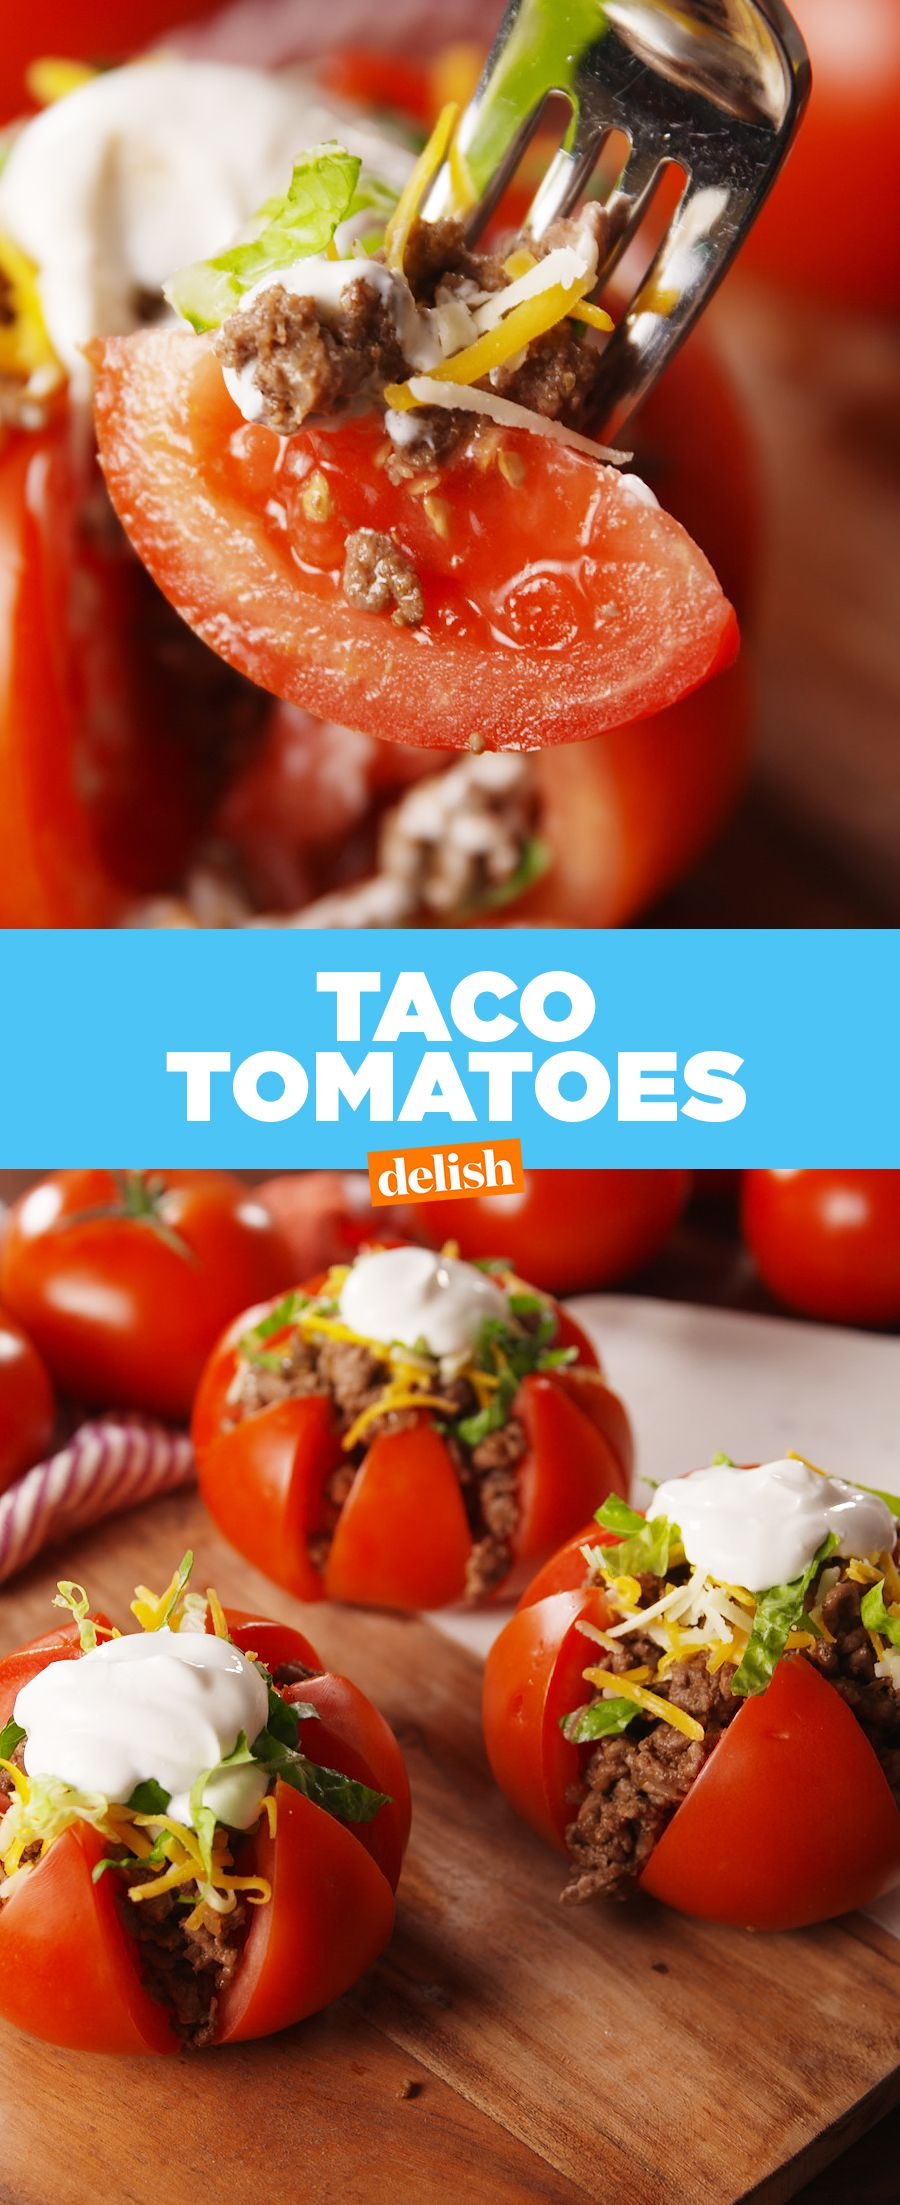 Taco Tomatoes Are Our All Time Favorite Low Carb Hack Recipe Recipes Mexican Food Recipes Food